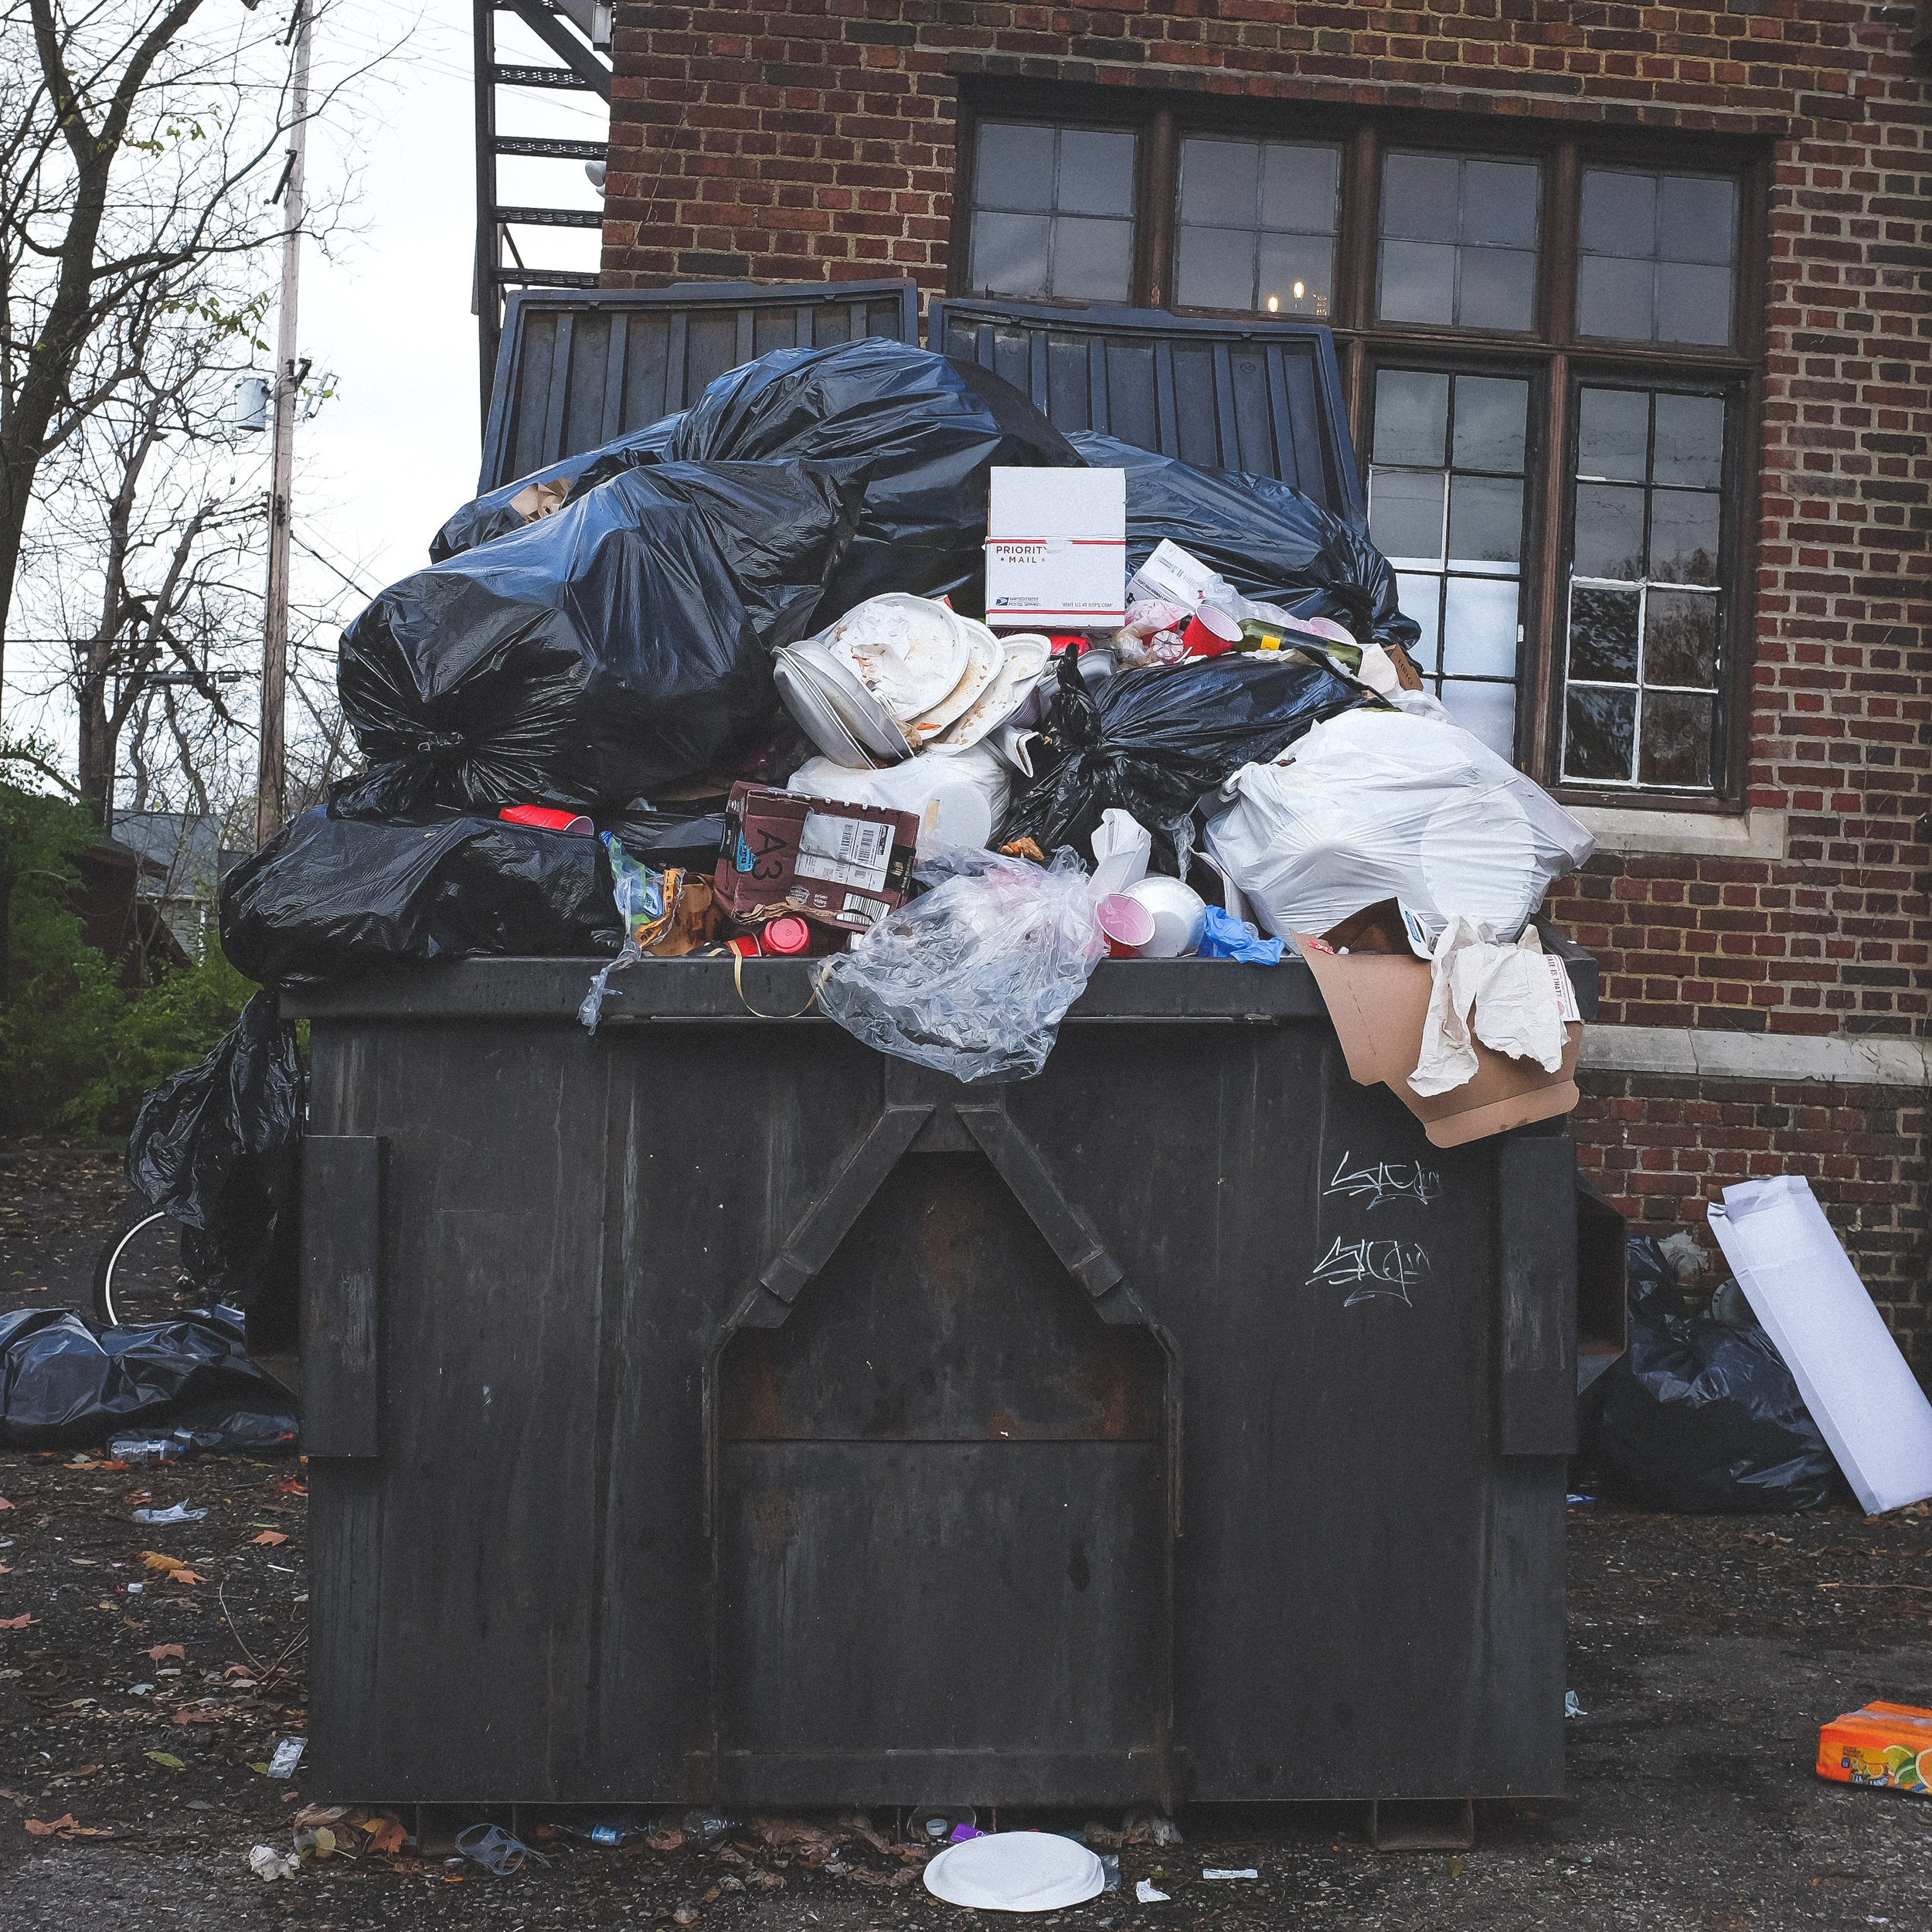 We generate 9+ pounds of trash per person per day. The national average is 7 pounds. -